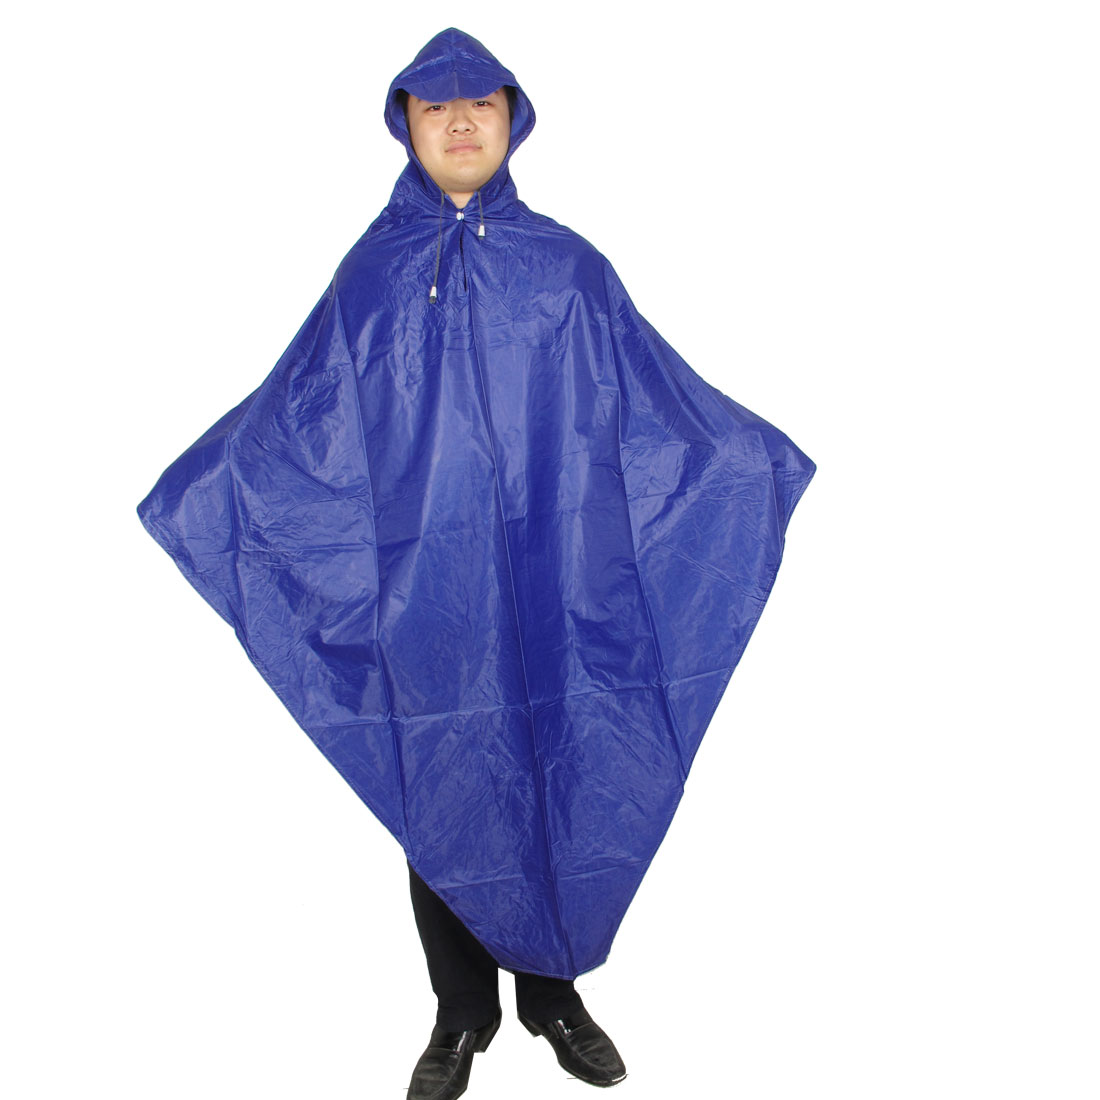 Adult Climbing Riding Blue Hoodie Pullover Raincoat Poncho Button Rainwear